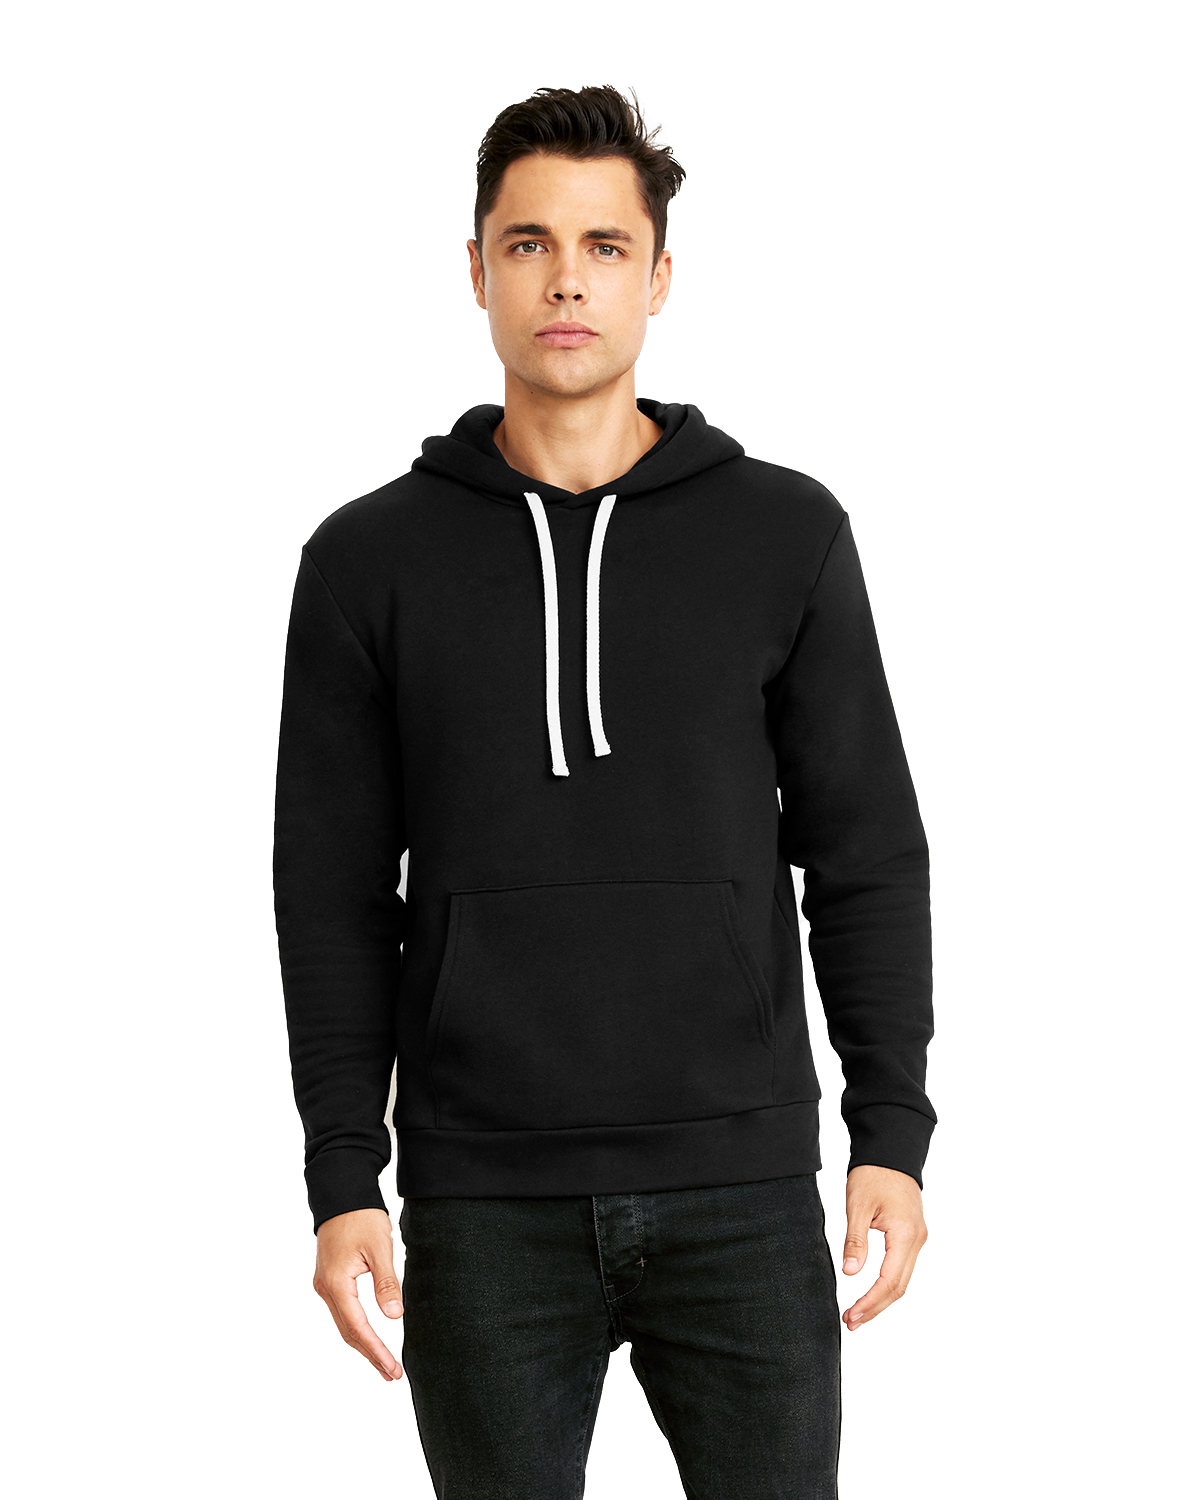 Next Level Apparel 9303 - Unisex Pullover Hood